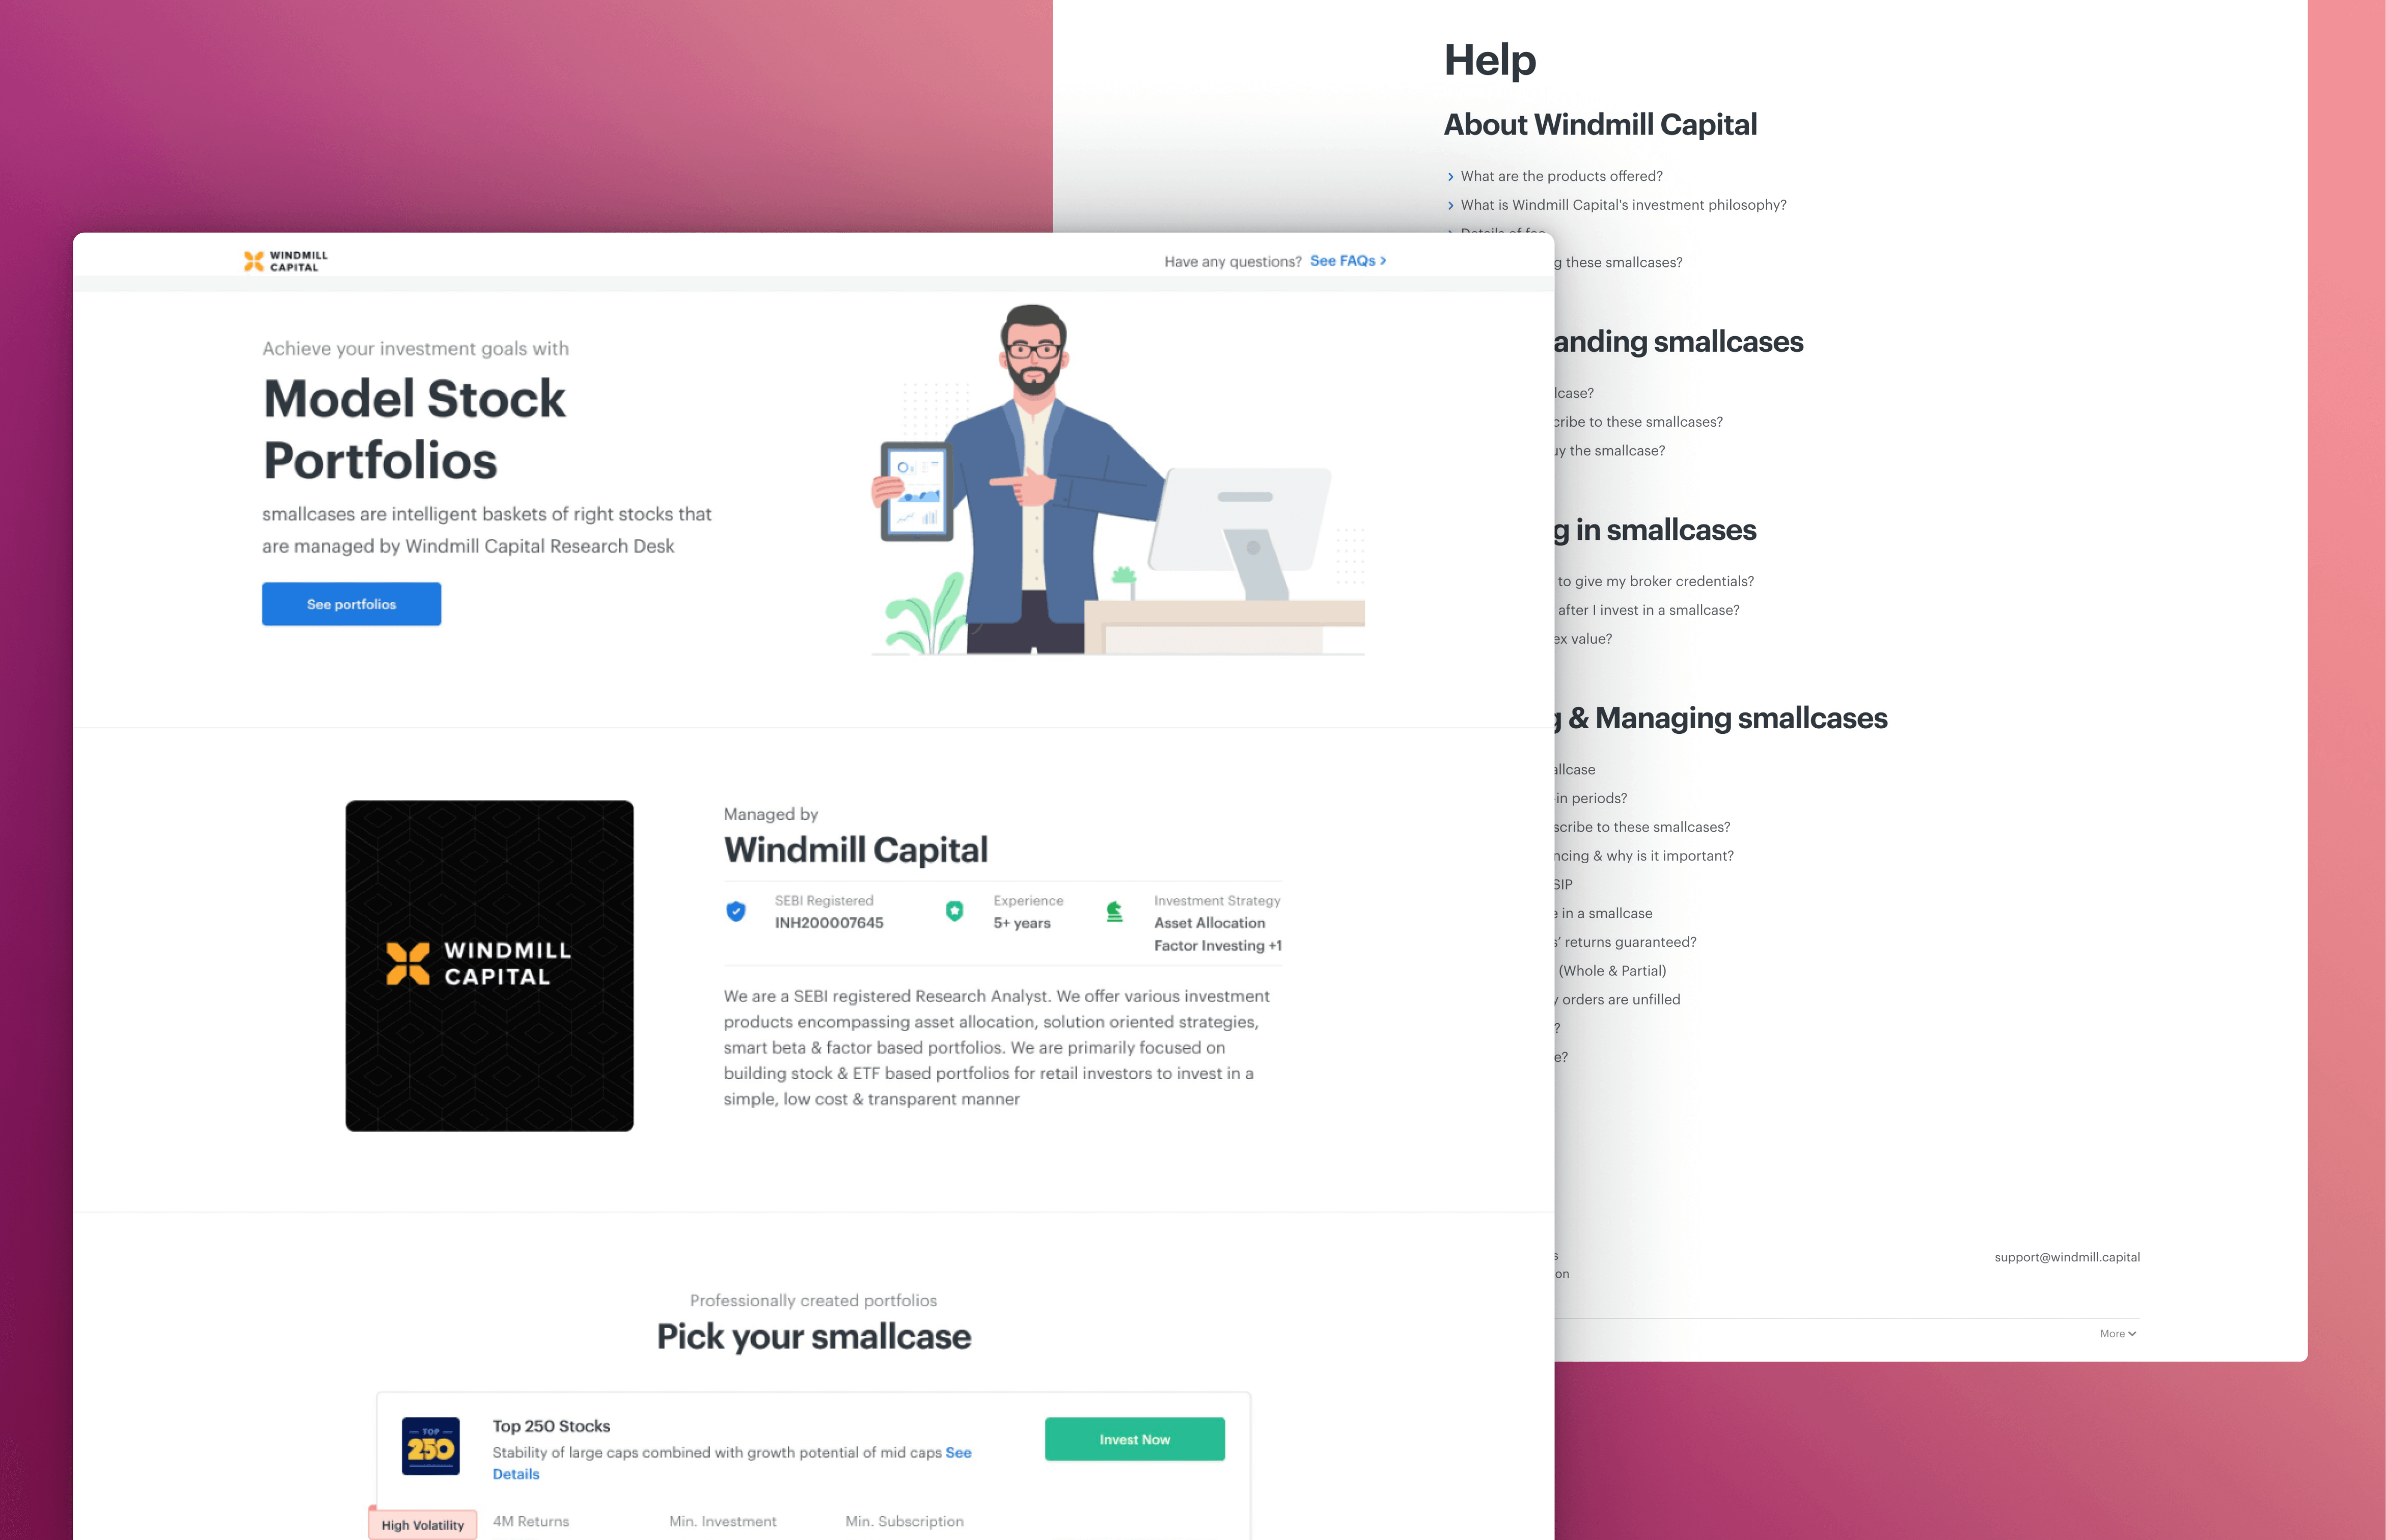 Microsite Landing and Help page using Next.js